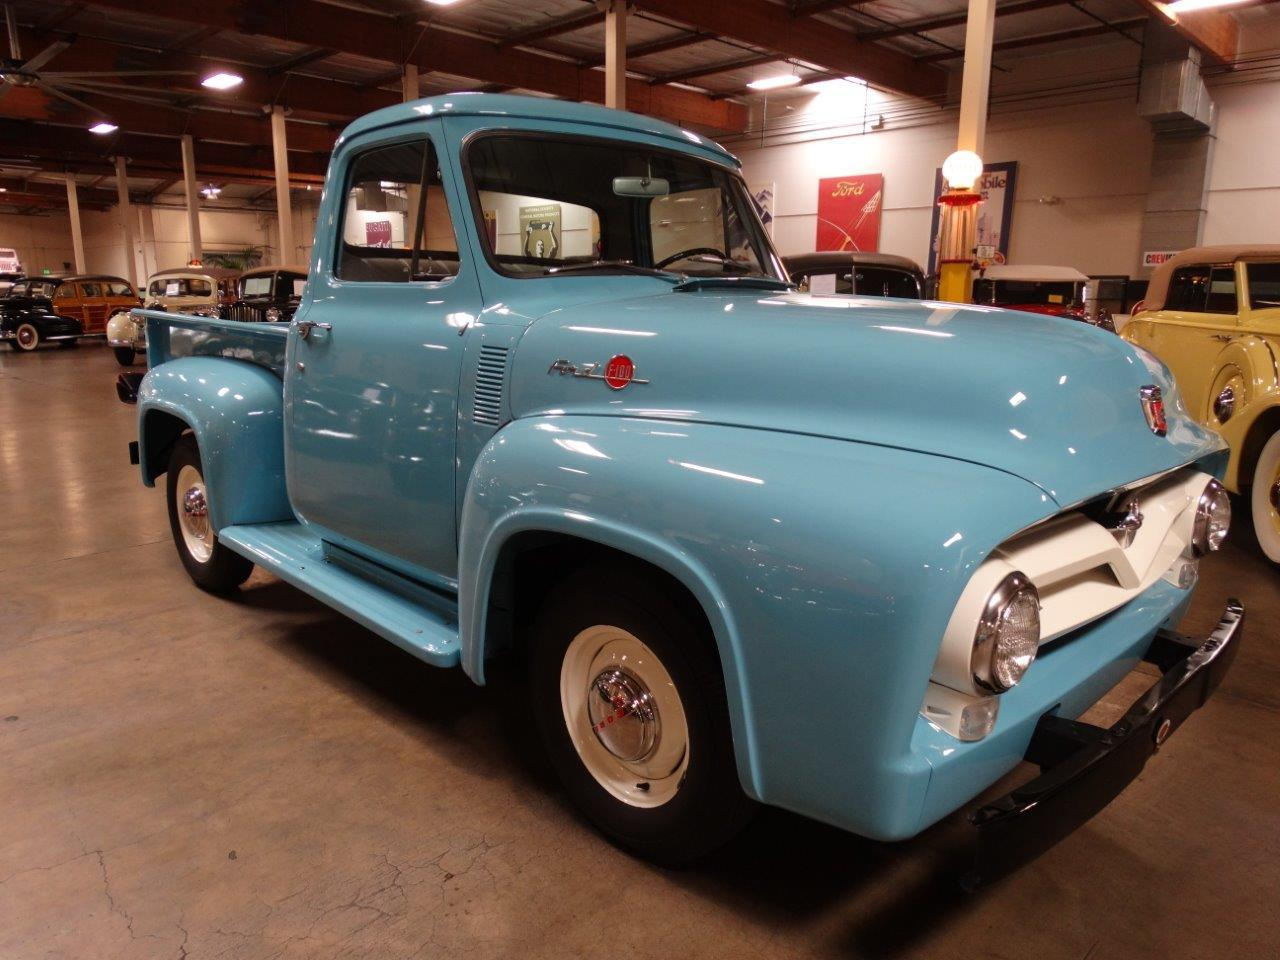 Large picture of 1955 ford f100 located in california 34900 00 n3d0